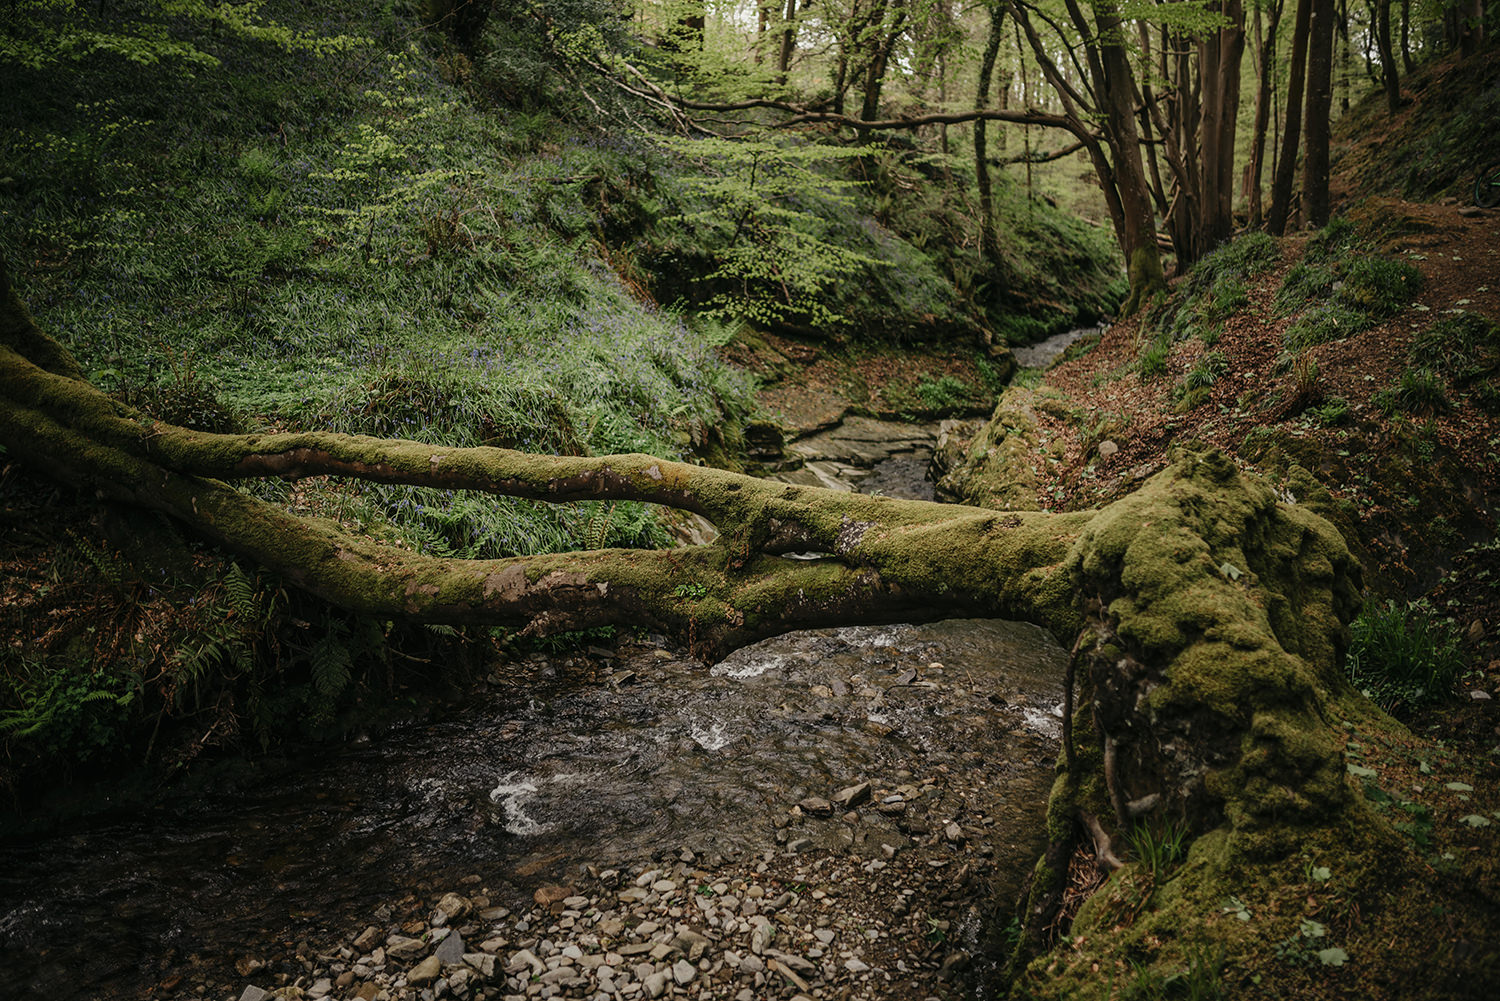 We decided to go for a walk in Groudle Glen for their photos